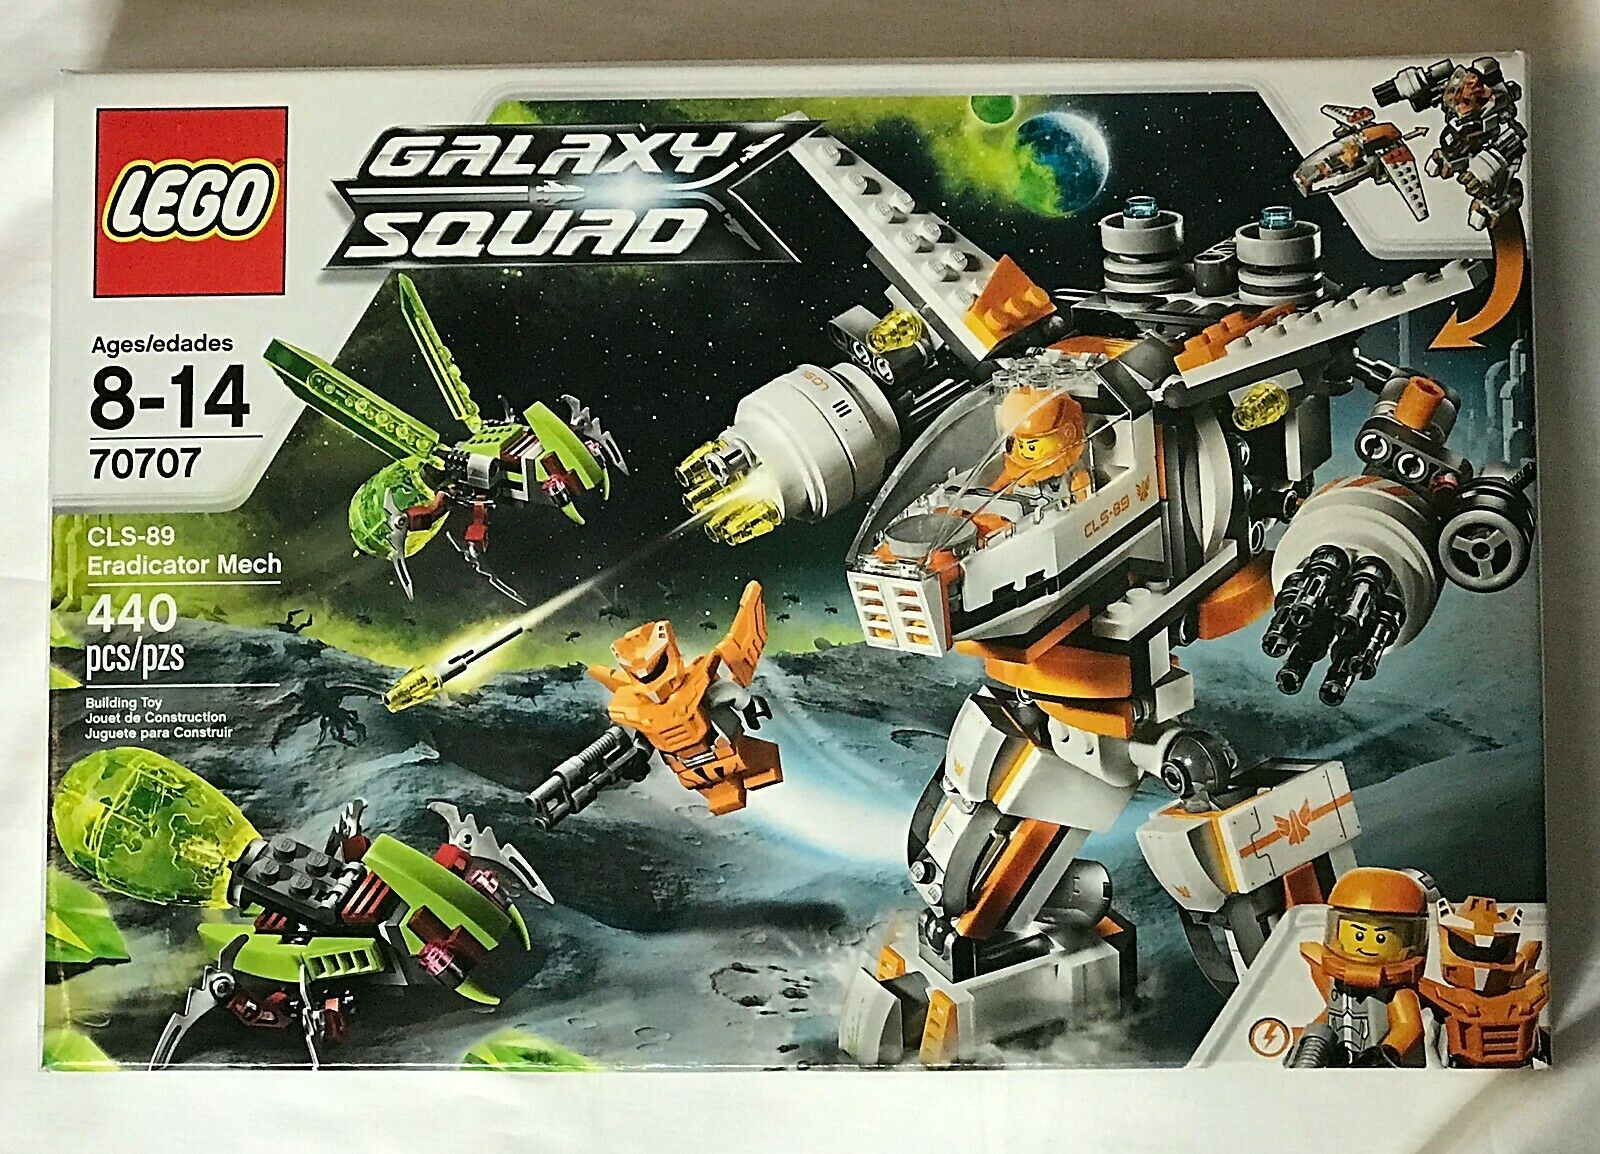 LEGO Galaxy Squad 70707 CLS-89 Eradicator Mech 440 pieces